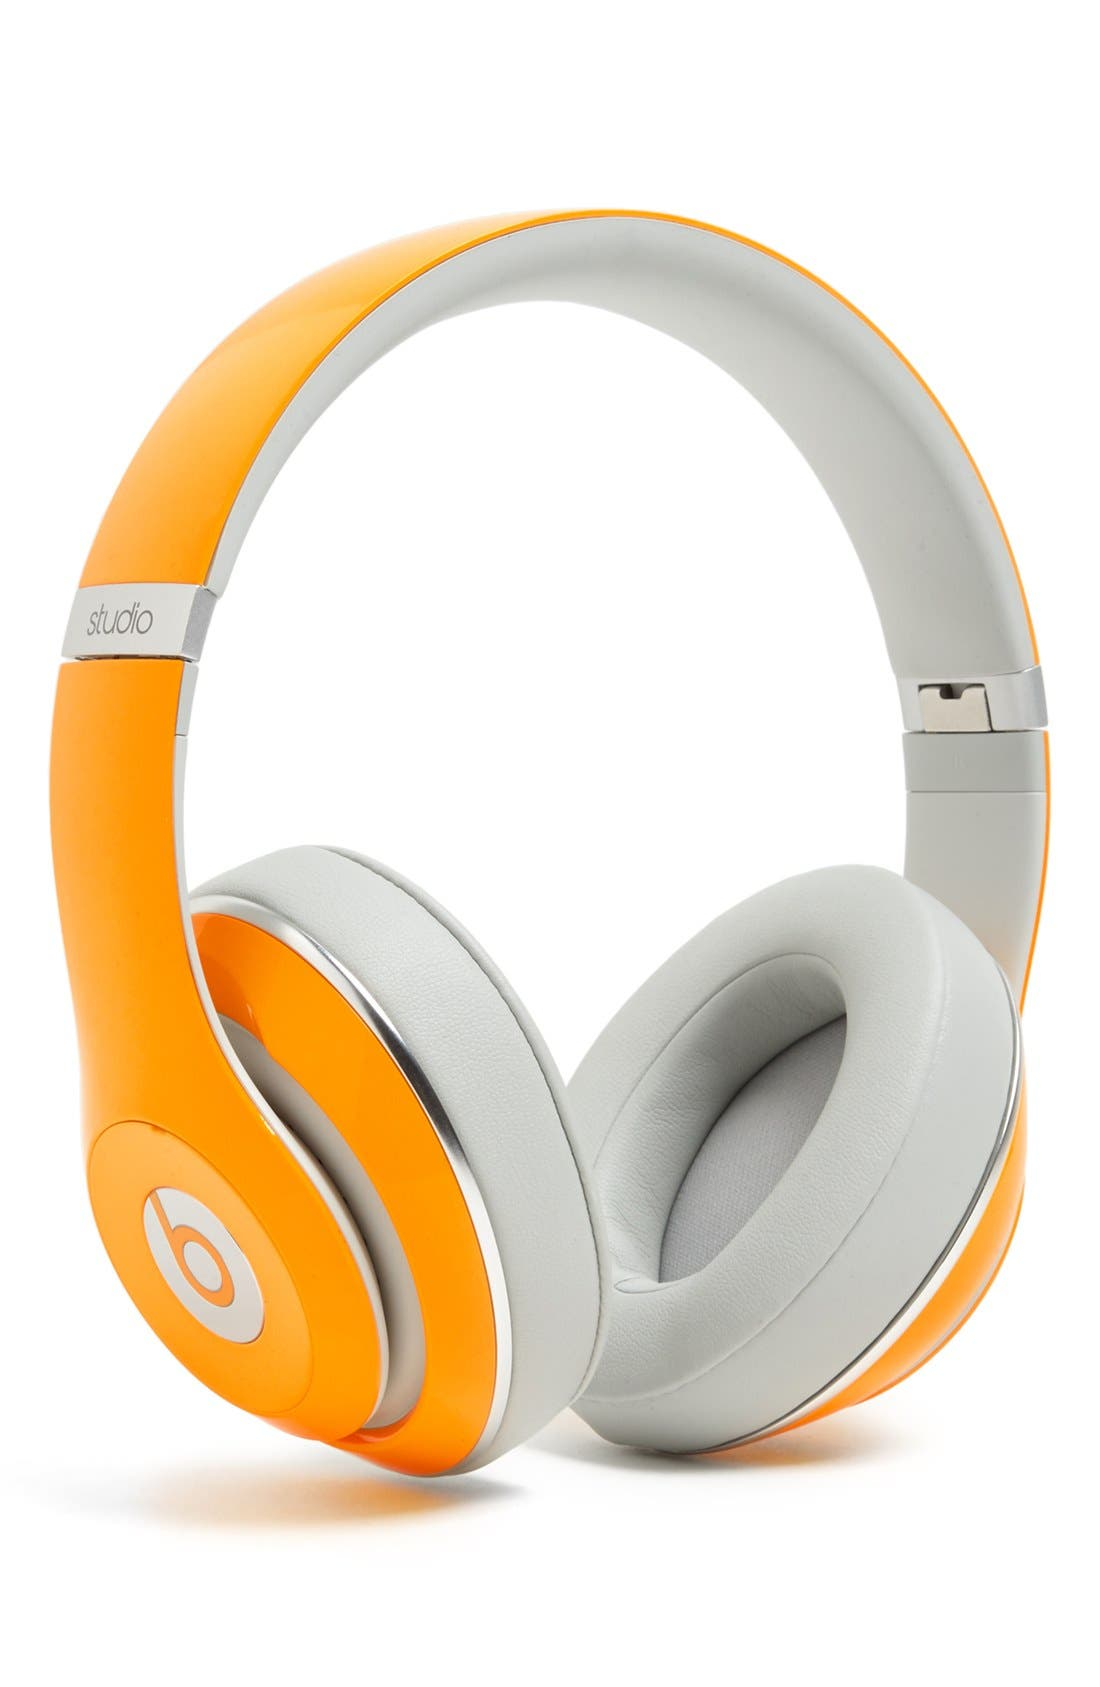 Main Image - Beats by Dr. Dre 'Studio' Limited Edition High Definition Headphones